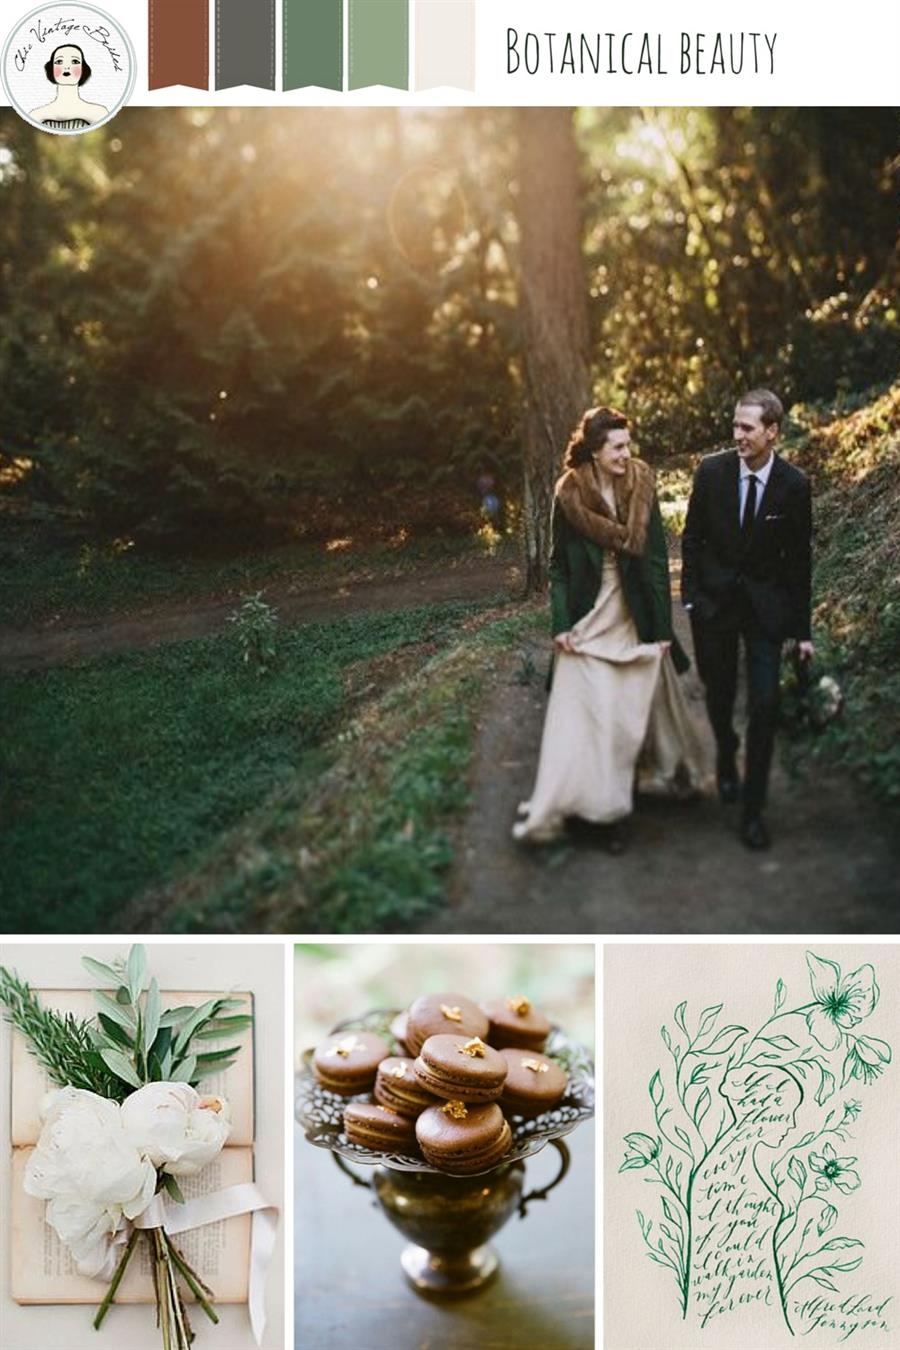 Botanical Beauty Wedding Mood Board